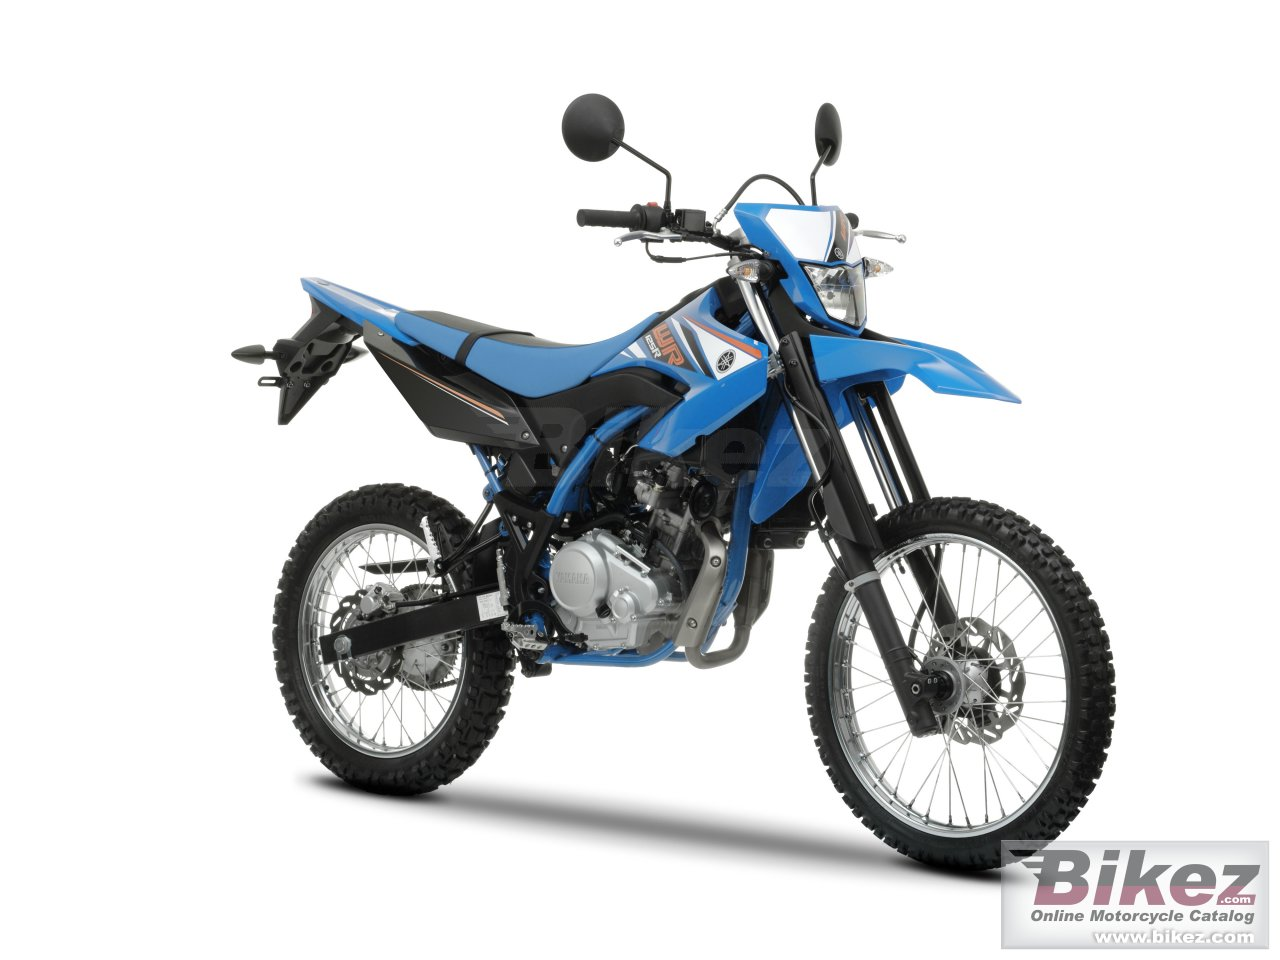 Big Yamaha wr 125r picture and wallpaper from Bikez.com